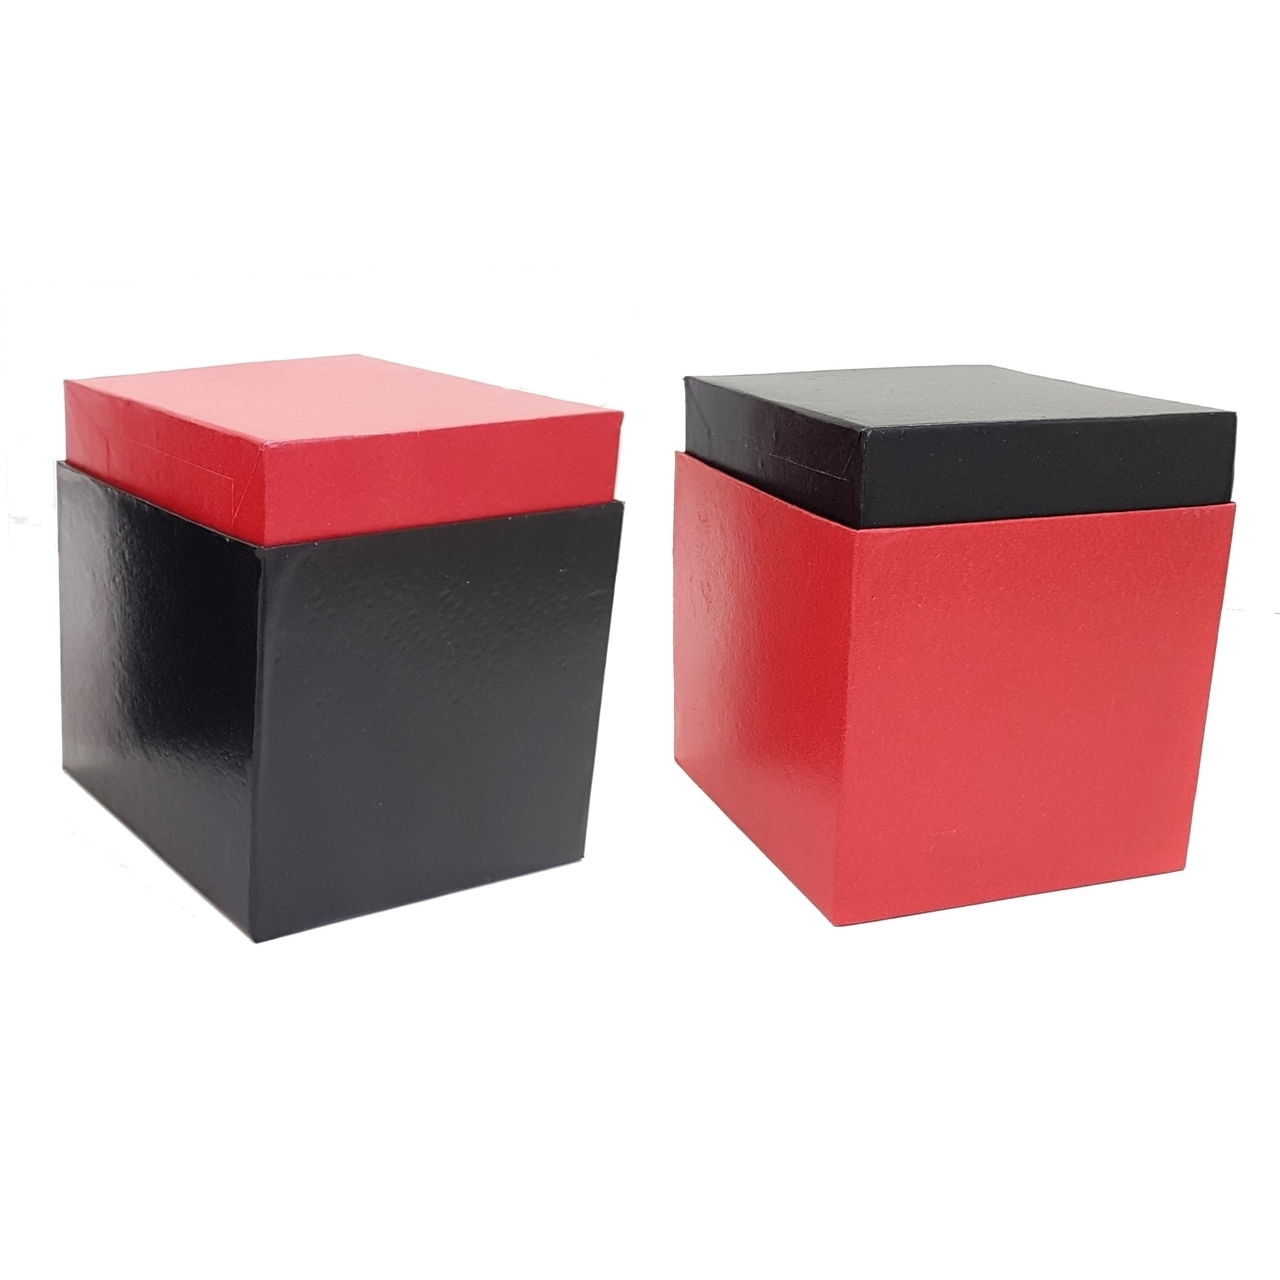 Gozinta Boxes Large